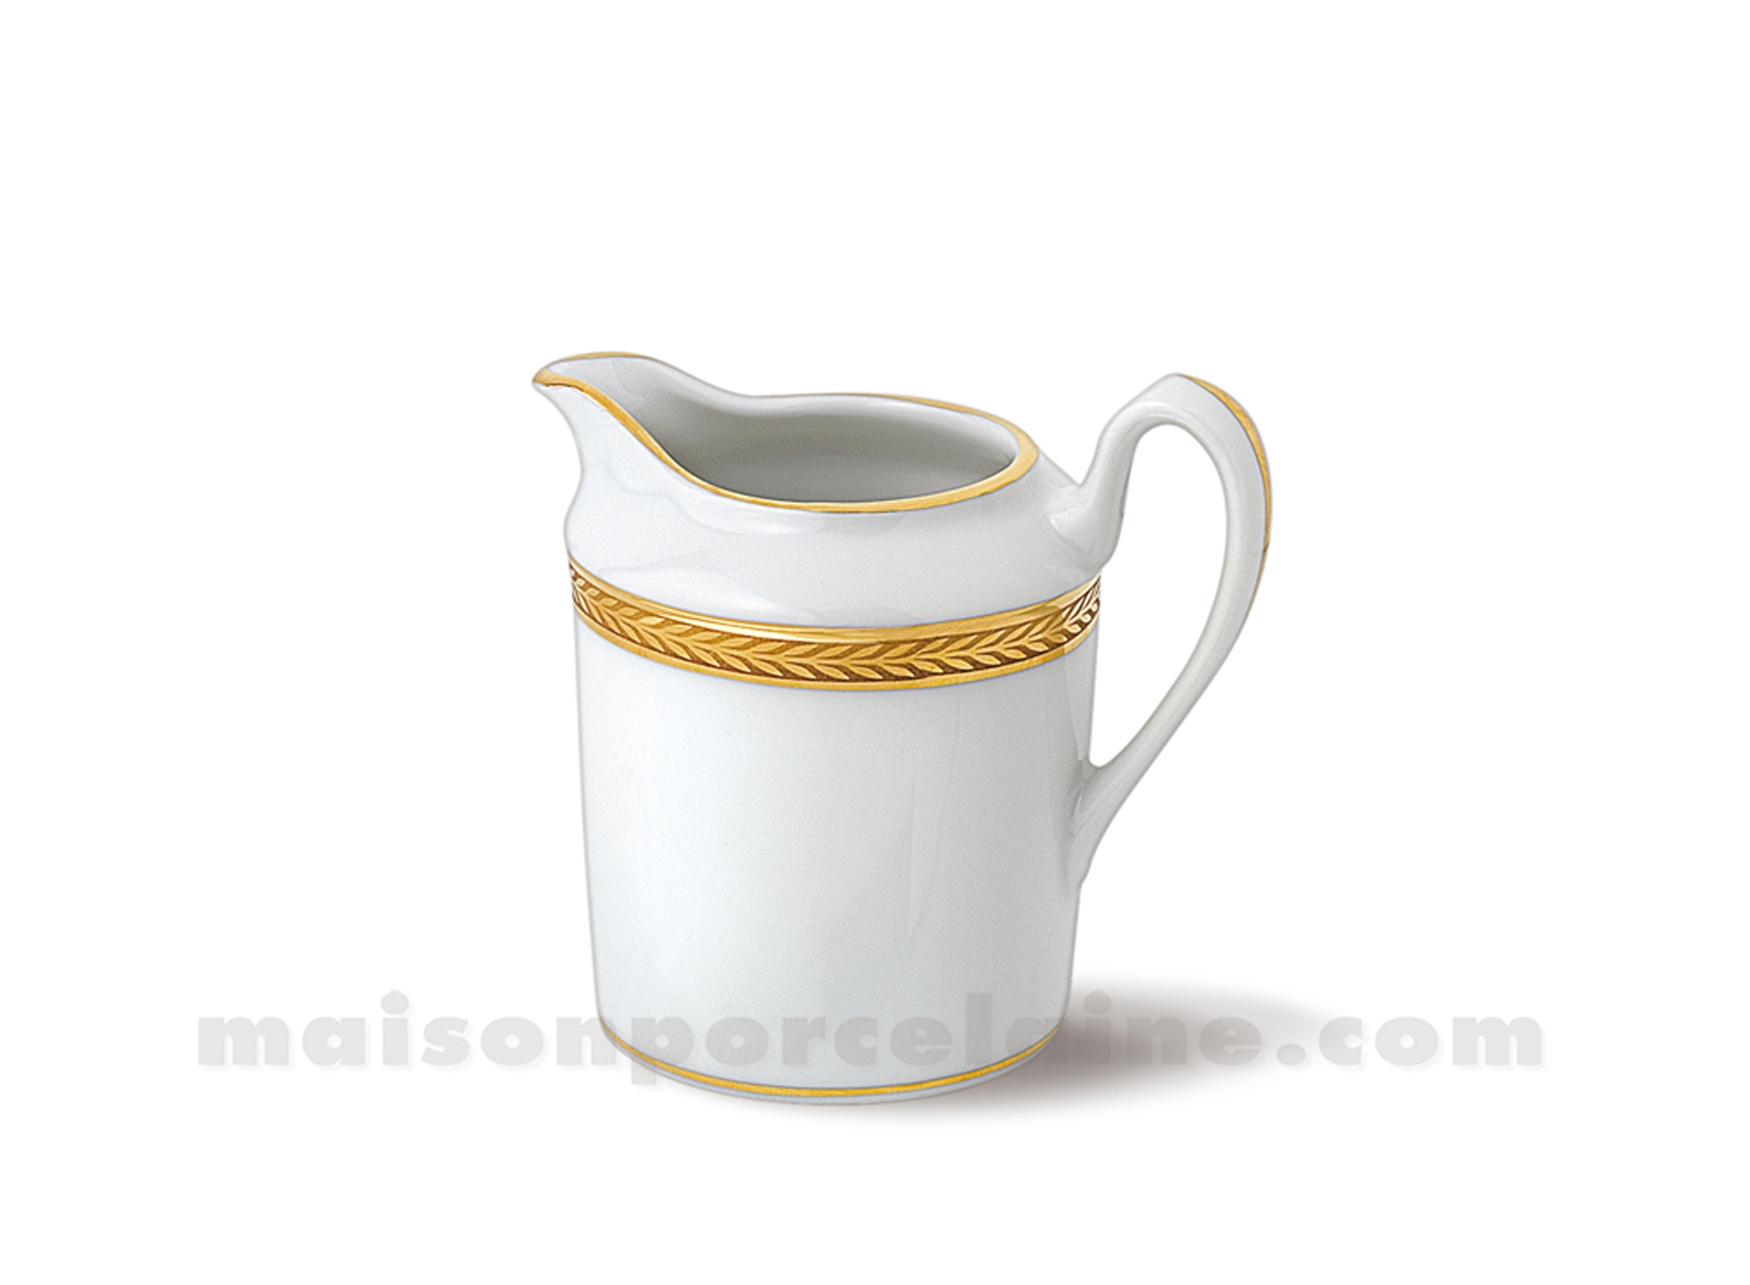 Cremier Limoges Empire 10x7 18cl Maison De La Porcelaine